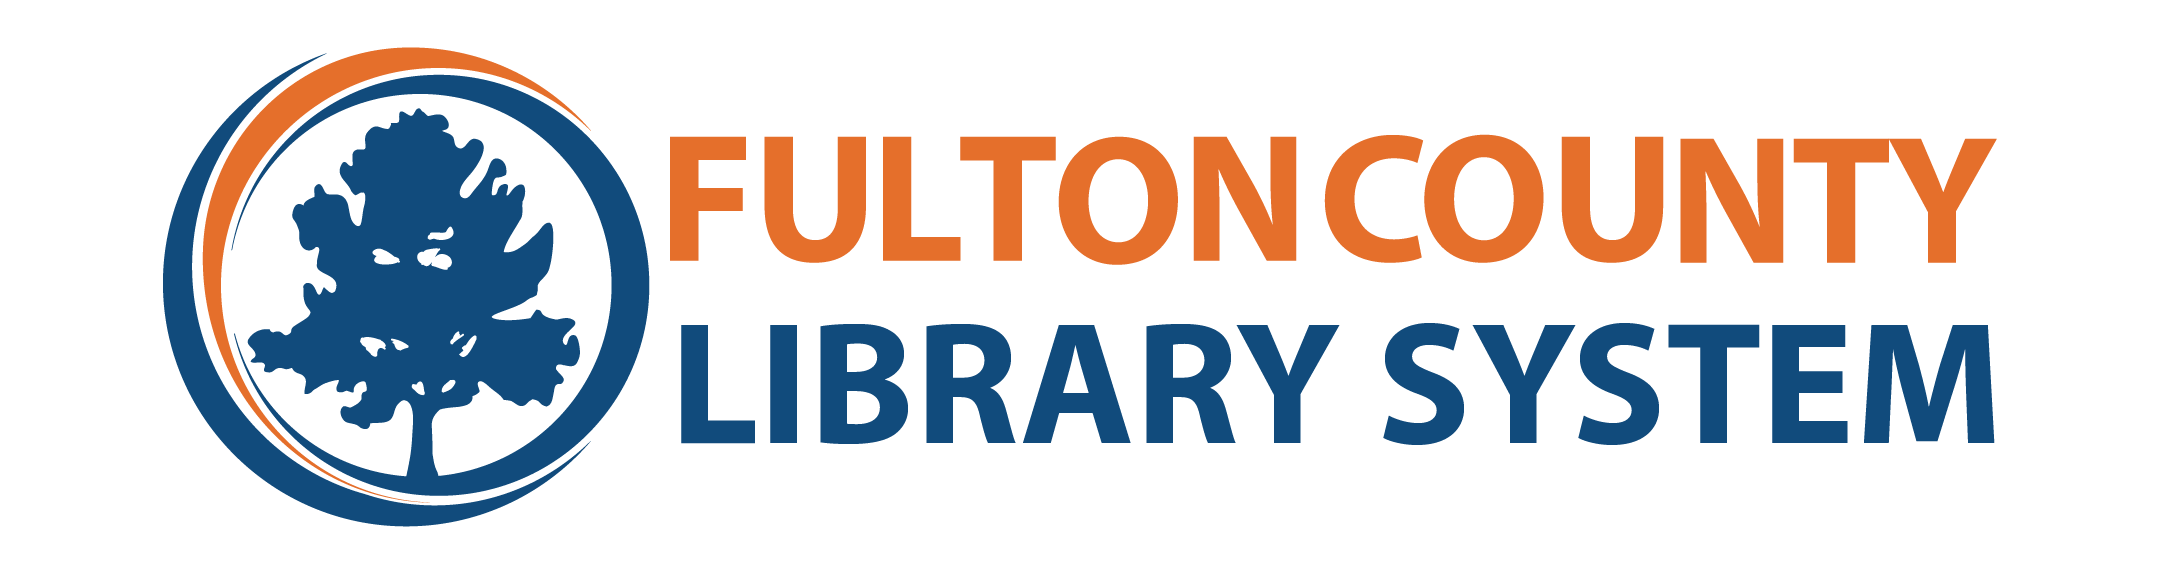 Fulton County Library System